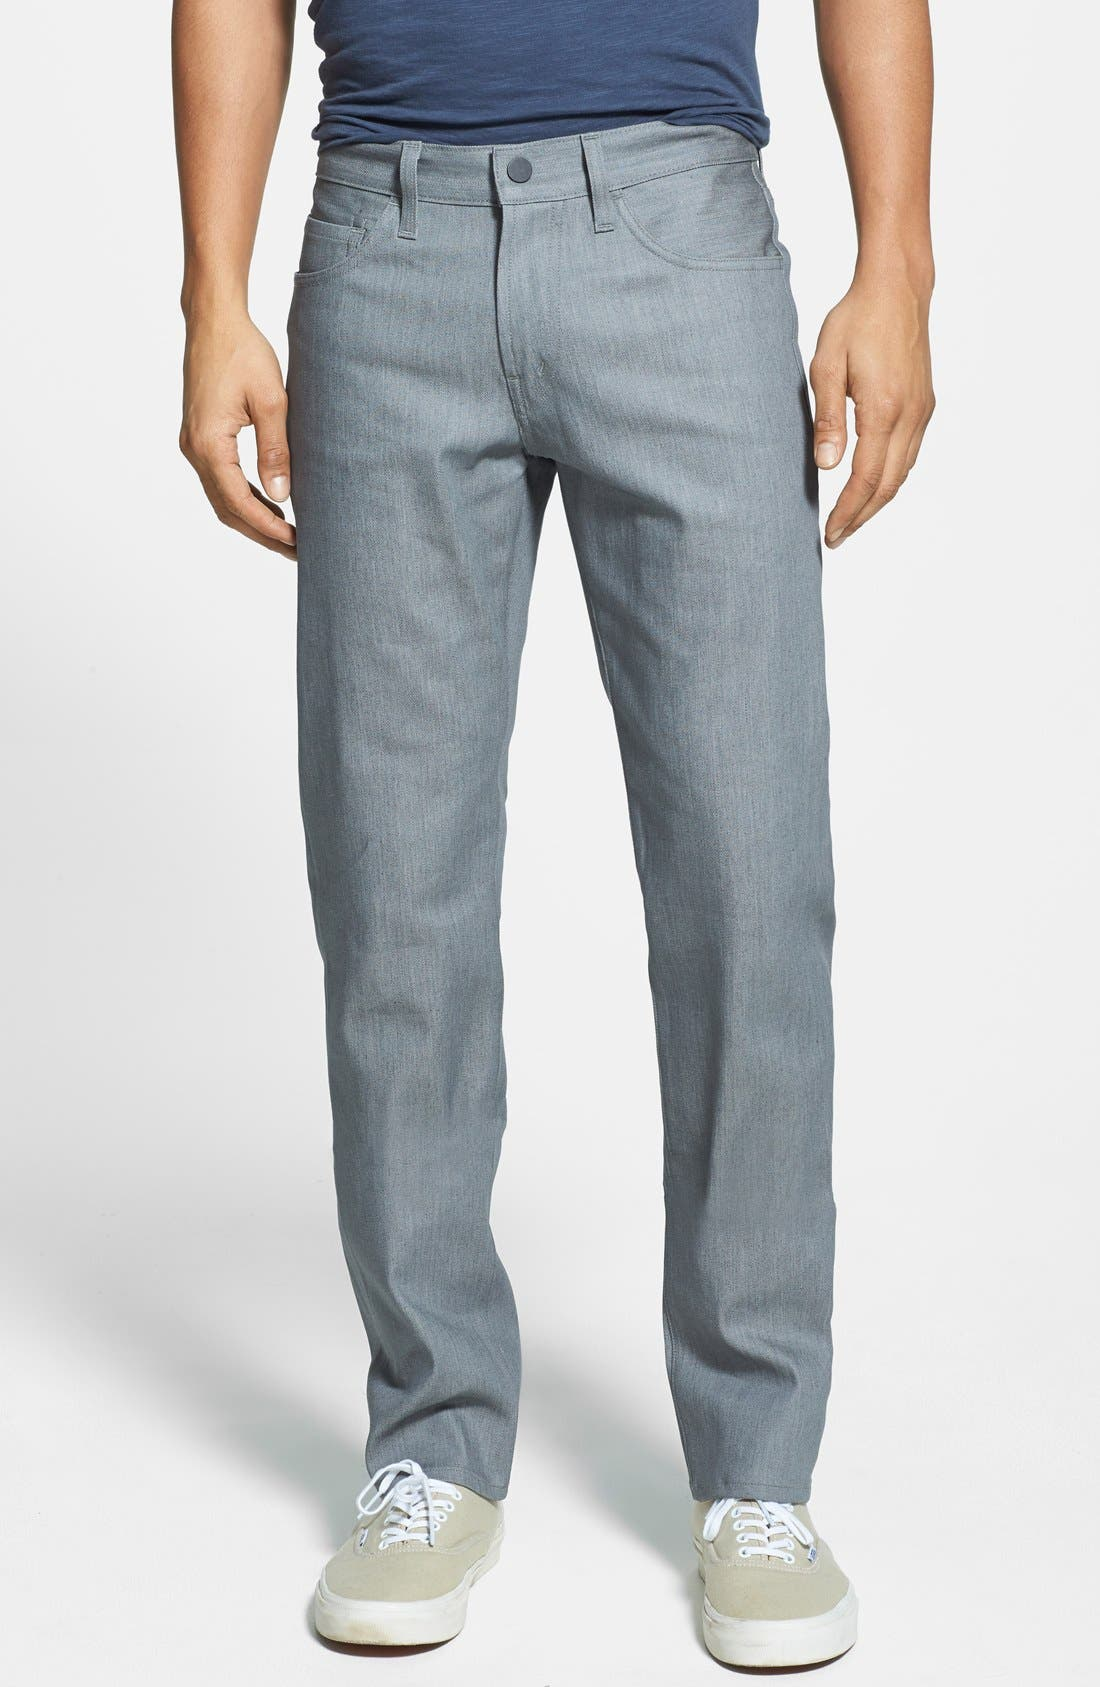 Alternate Image 1 Selected - J Brand 'Kane' Slim Fit Jeans (Stretch Raw Silver)